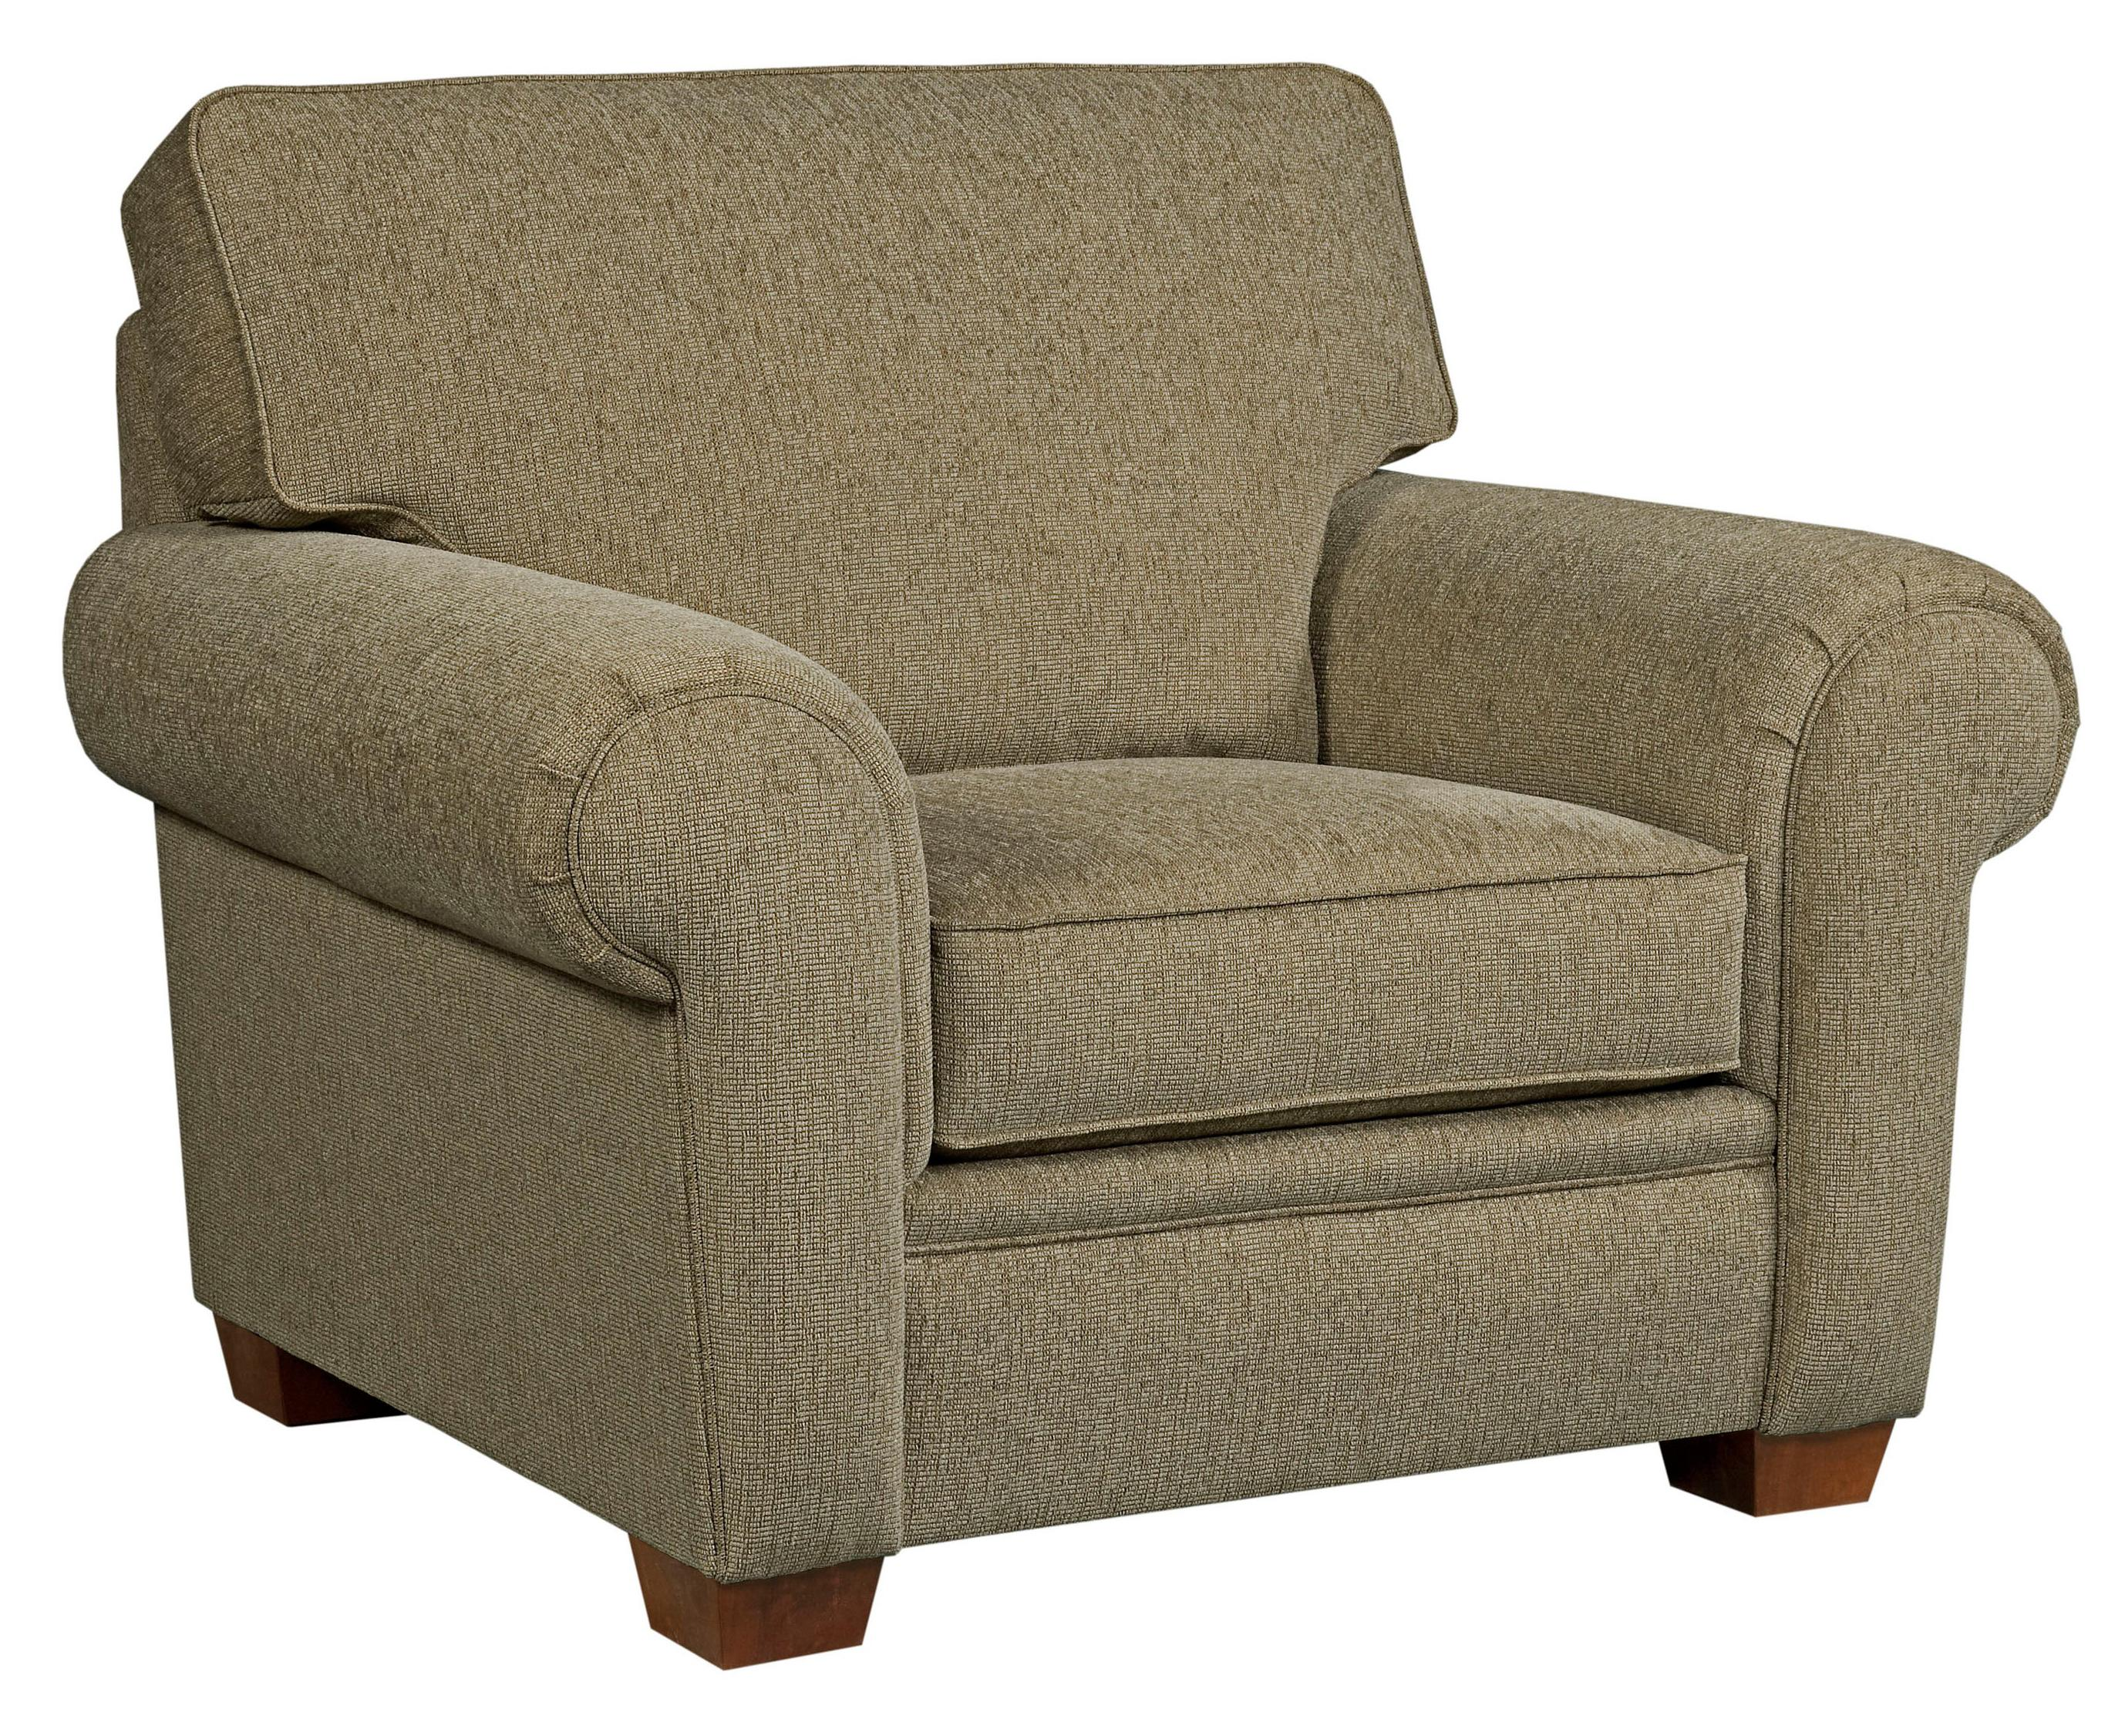 Broyhill Furniture Miller Casual Chair and a Half - Item Number: 5300-0